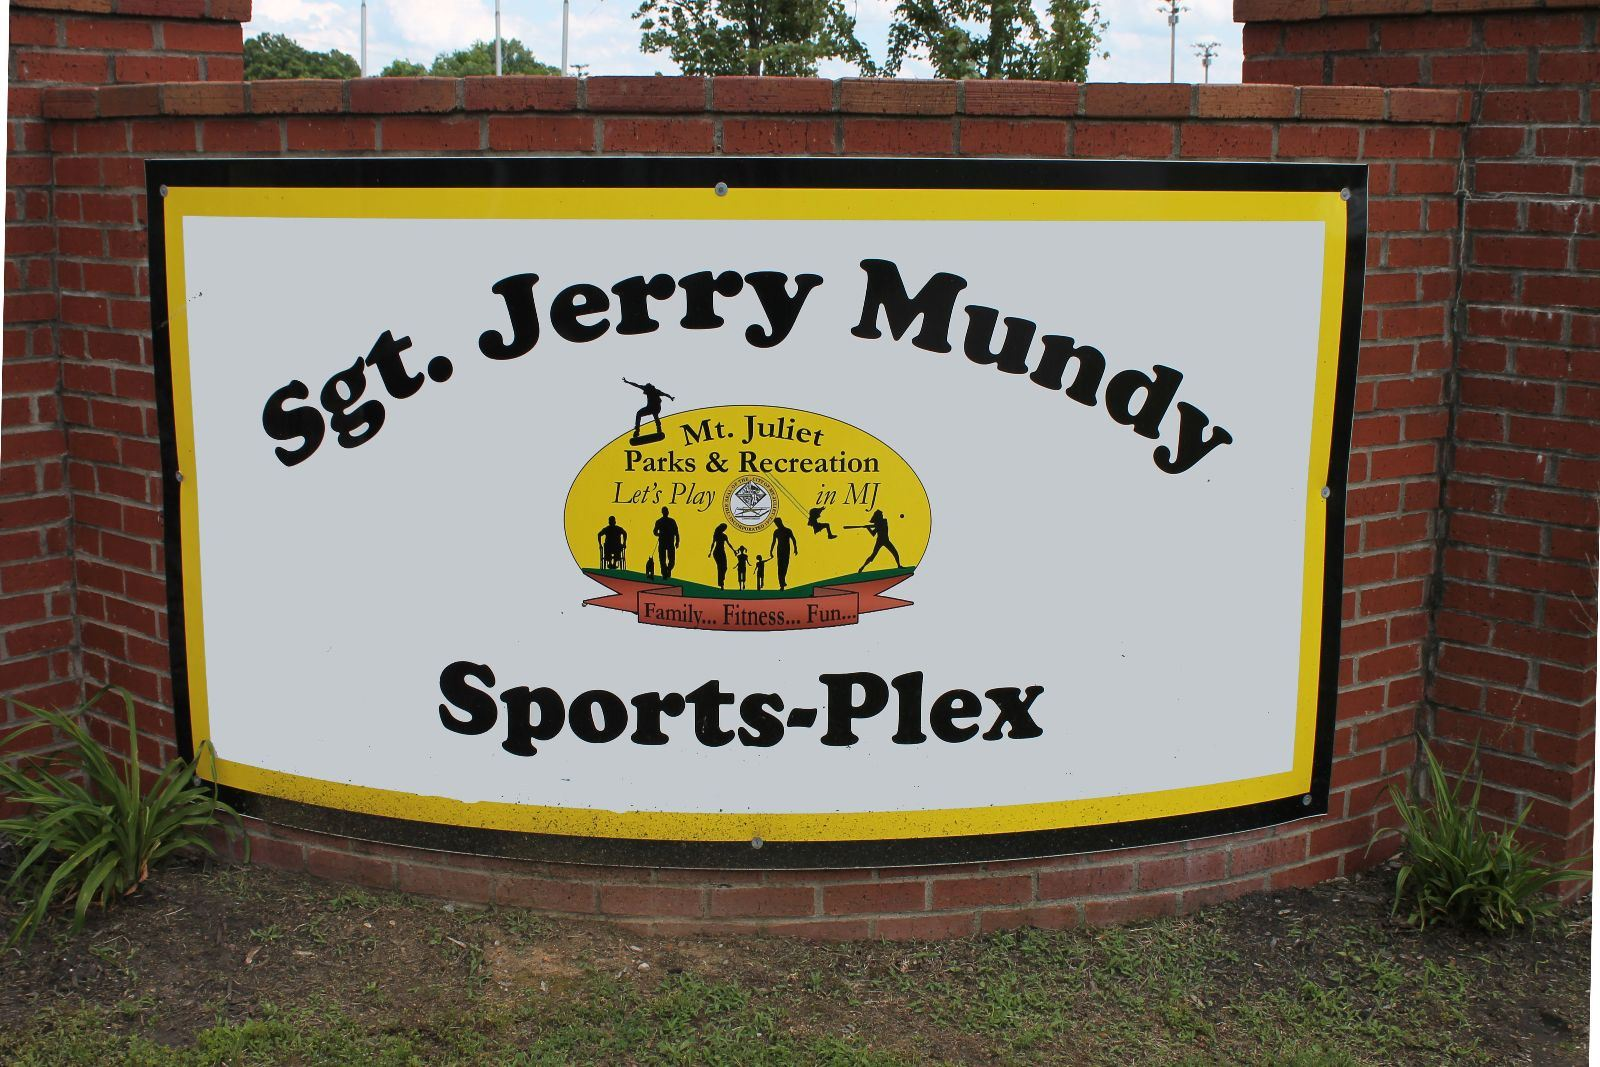 Sgt. Jerry Mundy Sports-Plex Sign